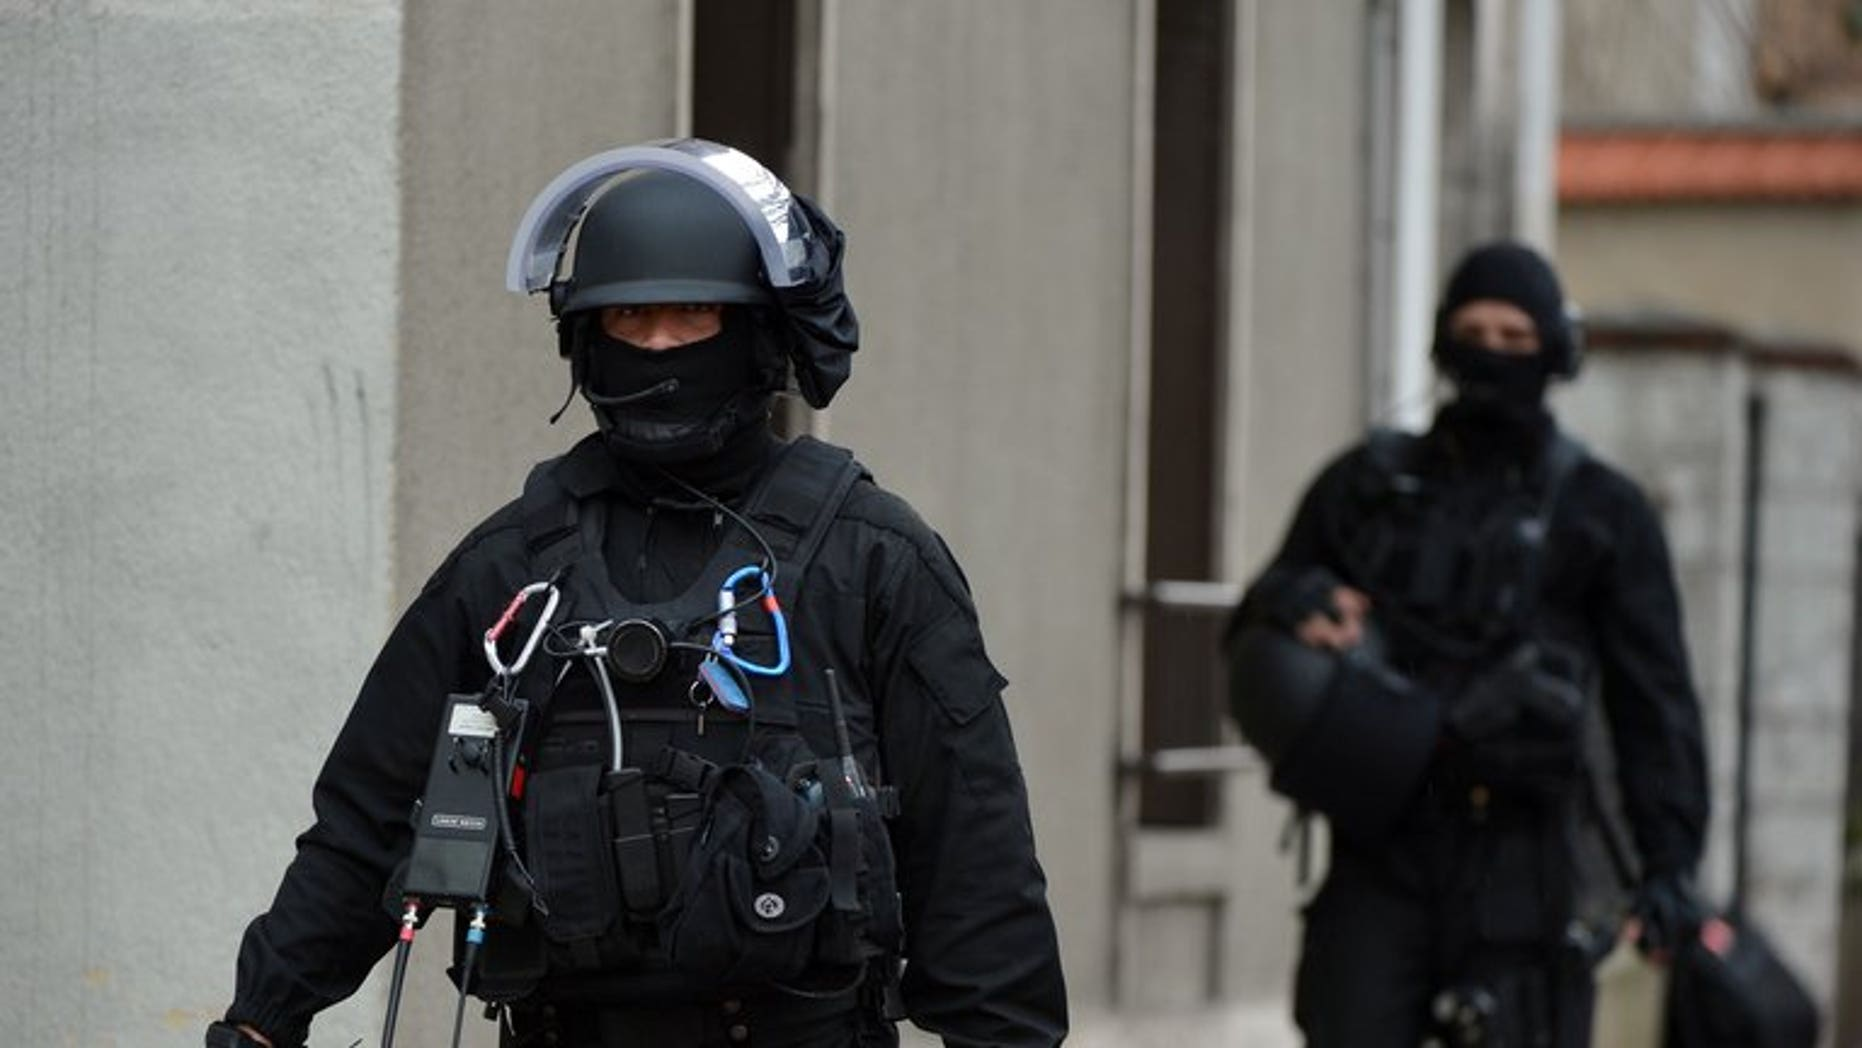 """Members of a special operations tactical unit of the French police are pictured on April 10, 2013 in a Paris suburb. Six people were arrested in the Paris region on Monday in coordinated raids on members of a suspected radical Islamist cell allegedly planning """"terrorist acts"""" on French soil, a source close to the investigation told AFP."""